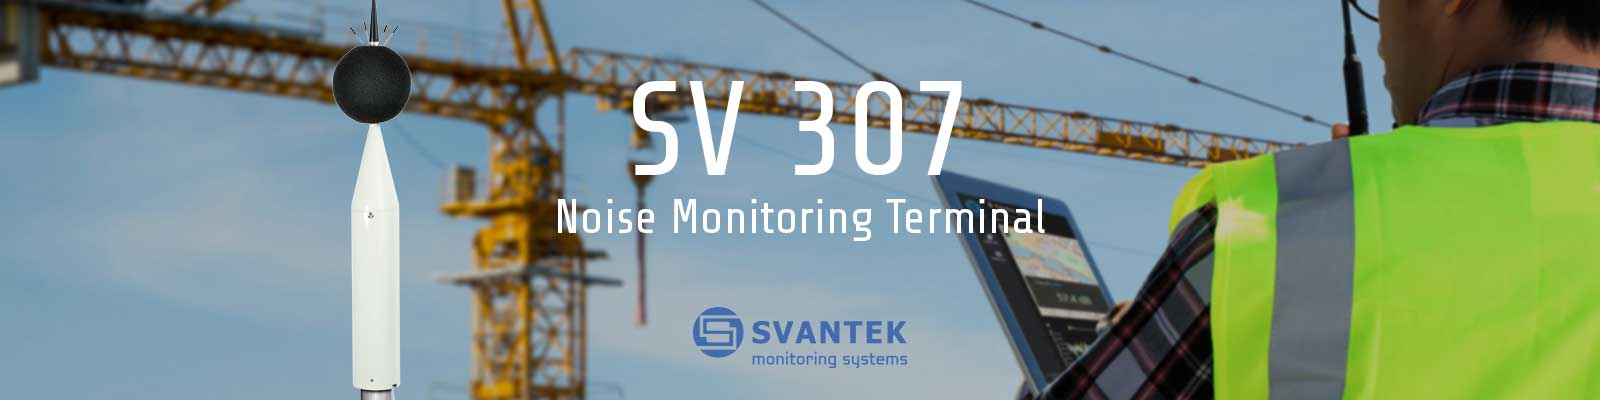 SV307 Noise Monitoring Terminal